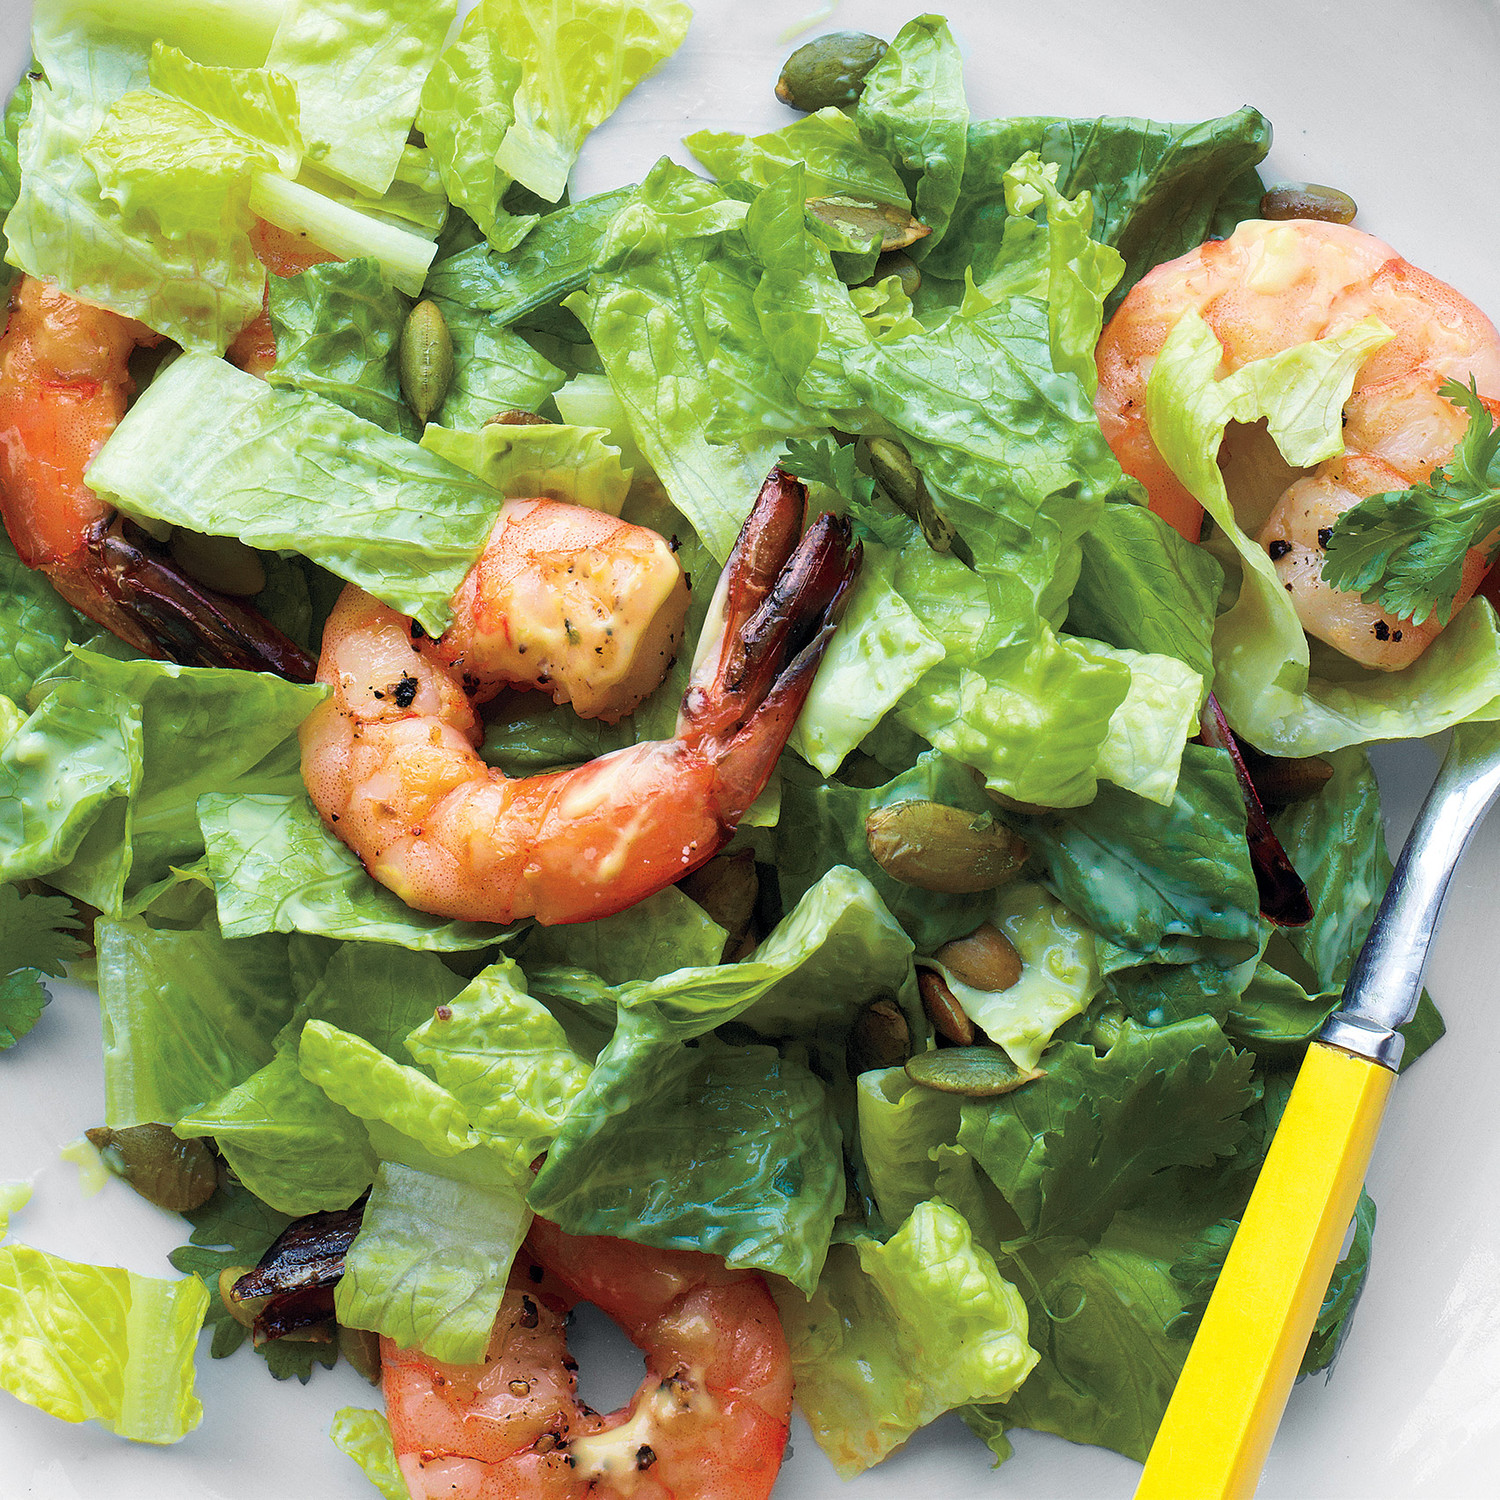 Salad with pineapple and chicken breast, shrimps, crab sticks 63